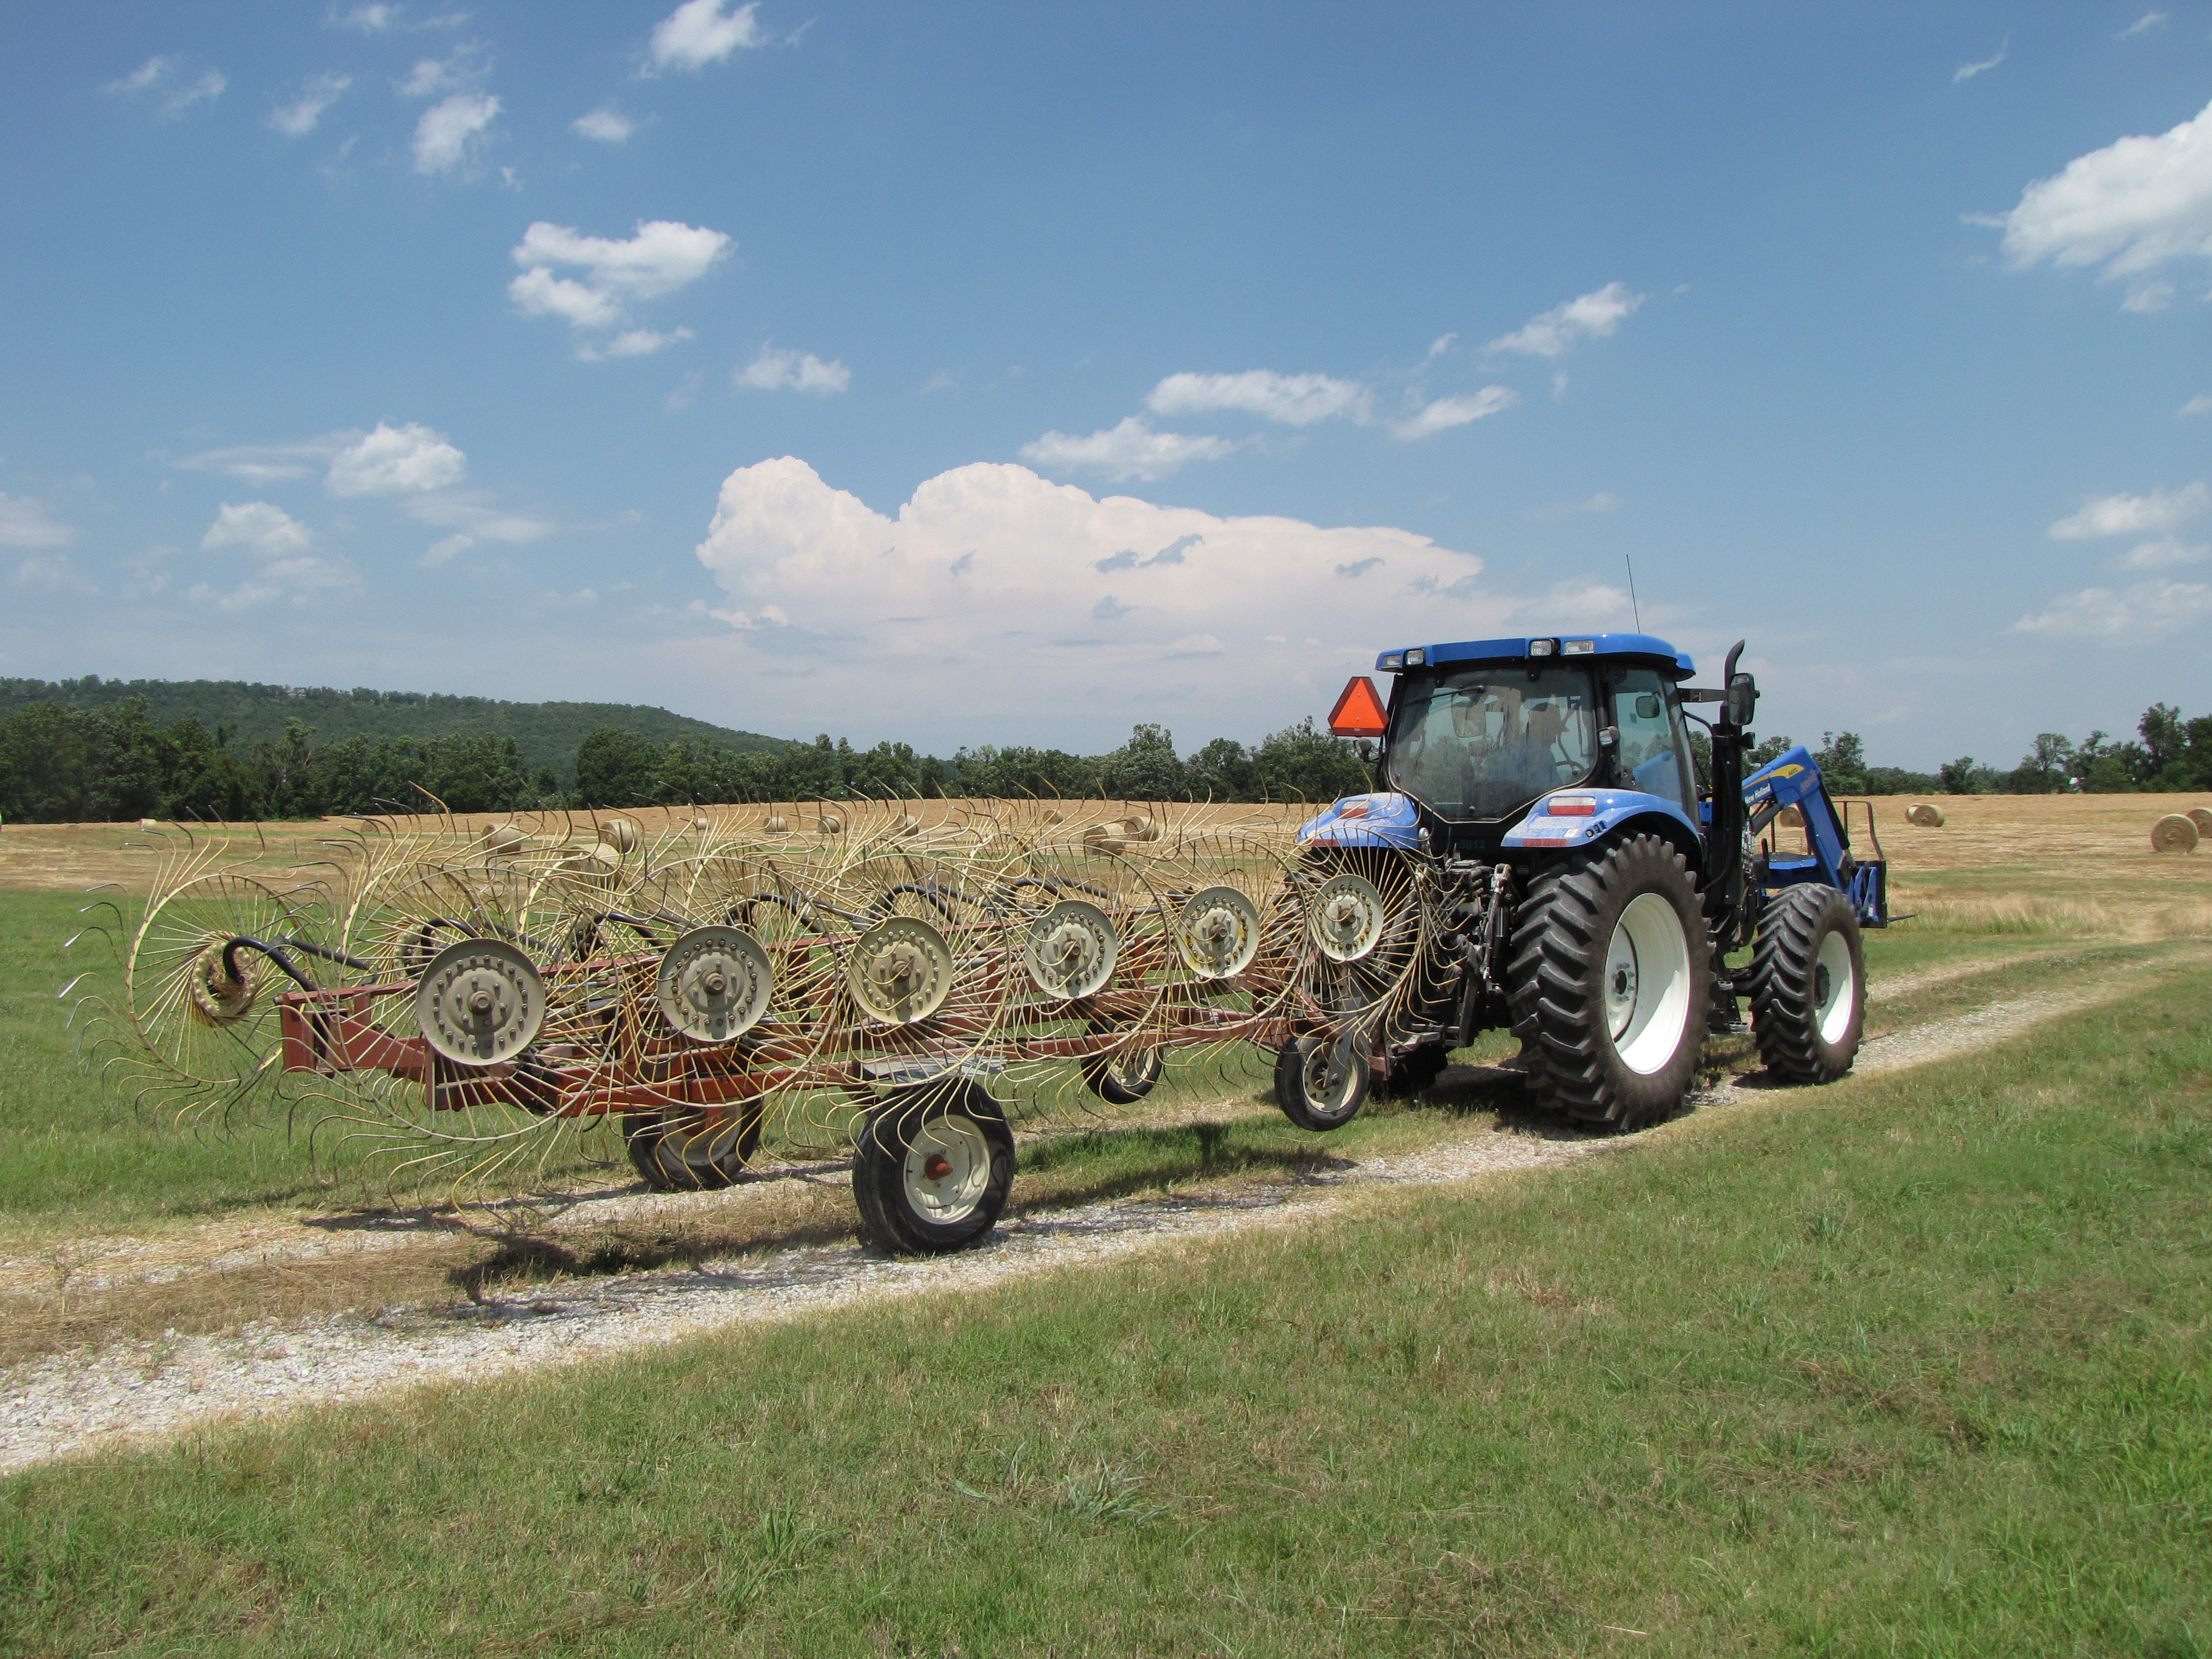 Biosolids Management Site - Tractor Pulling Implement